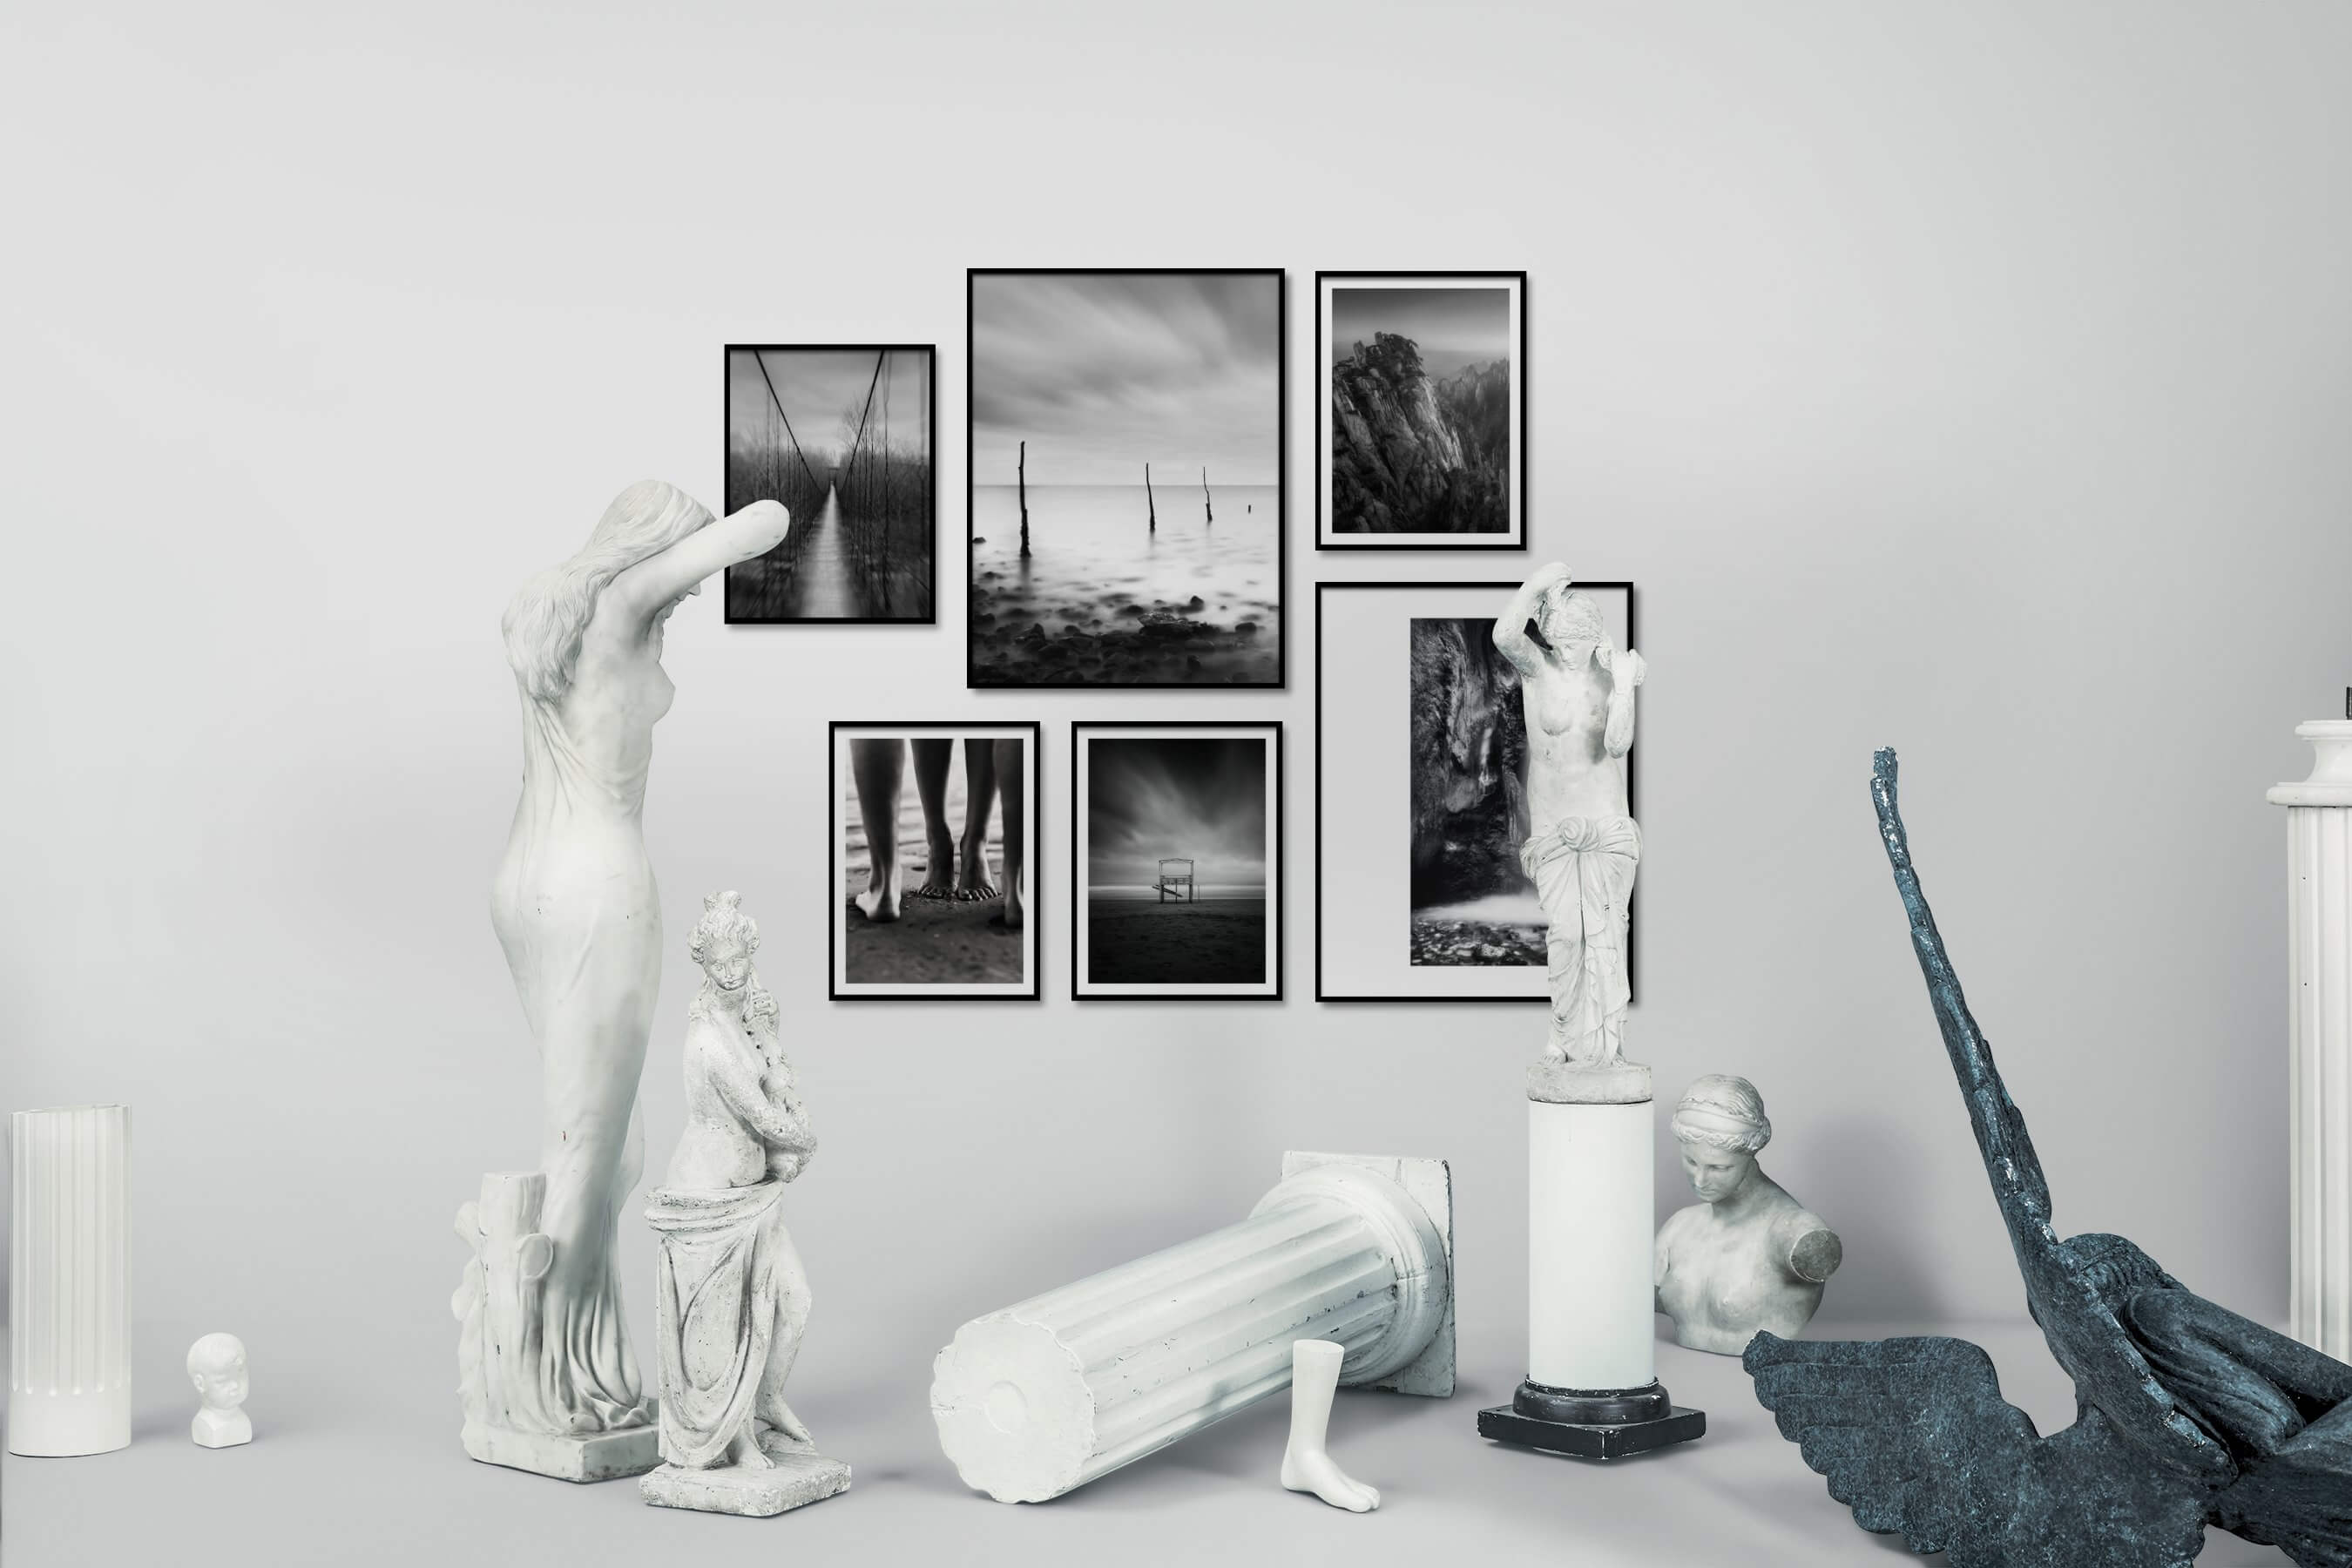 Gallery wall idea with six framed pictures arranged on a wall depicting Black & White, Nature, Beach & Water, Mindfulness, For the Moderate, and For the Minimalist